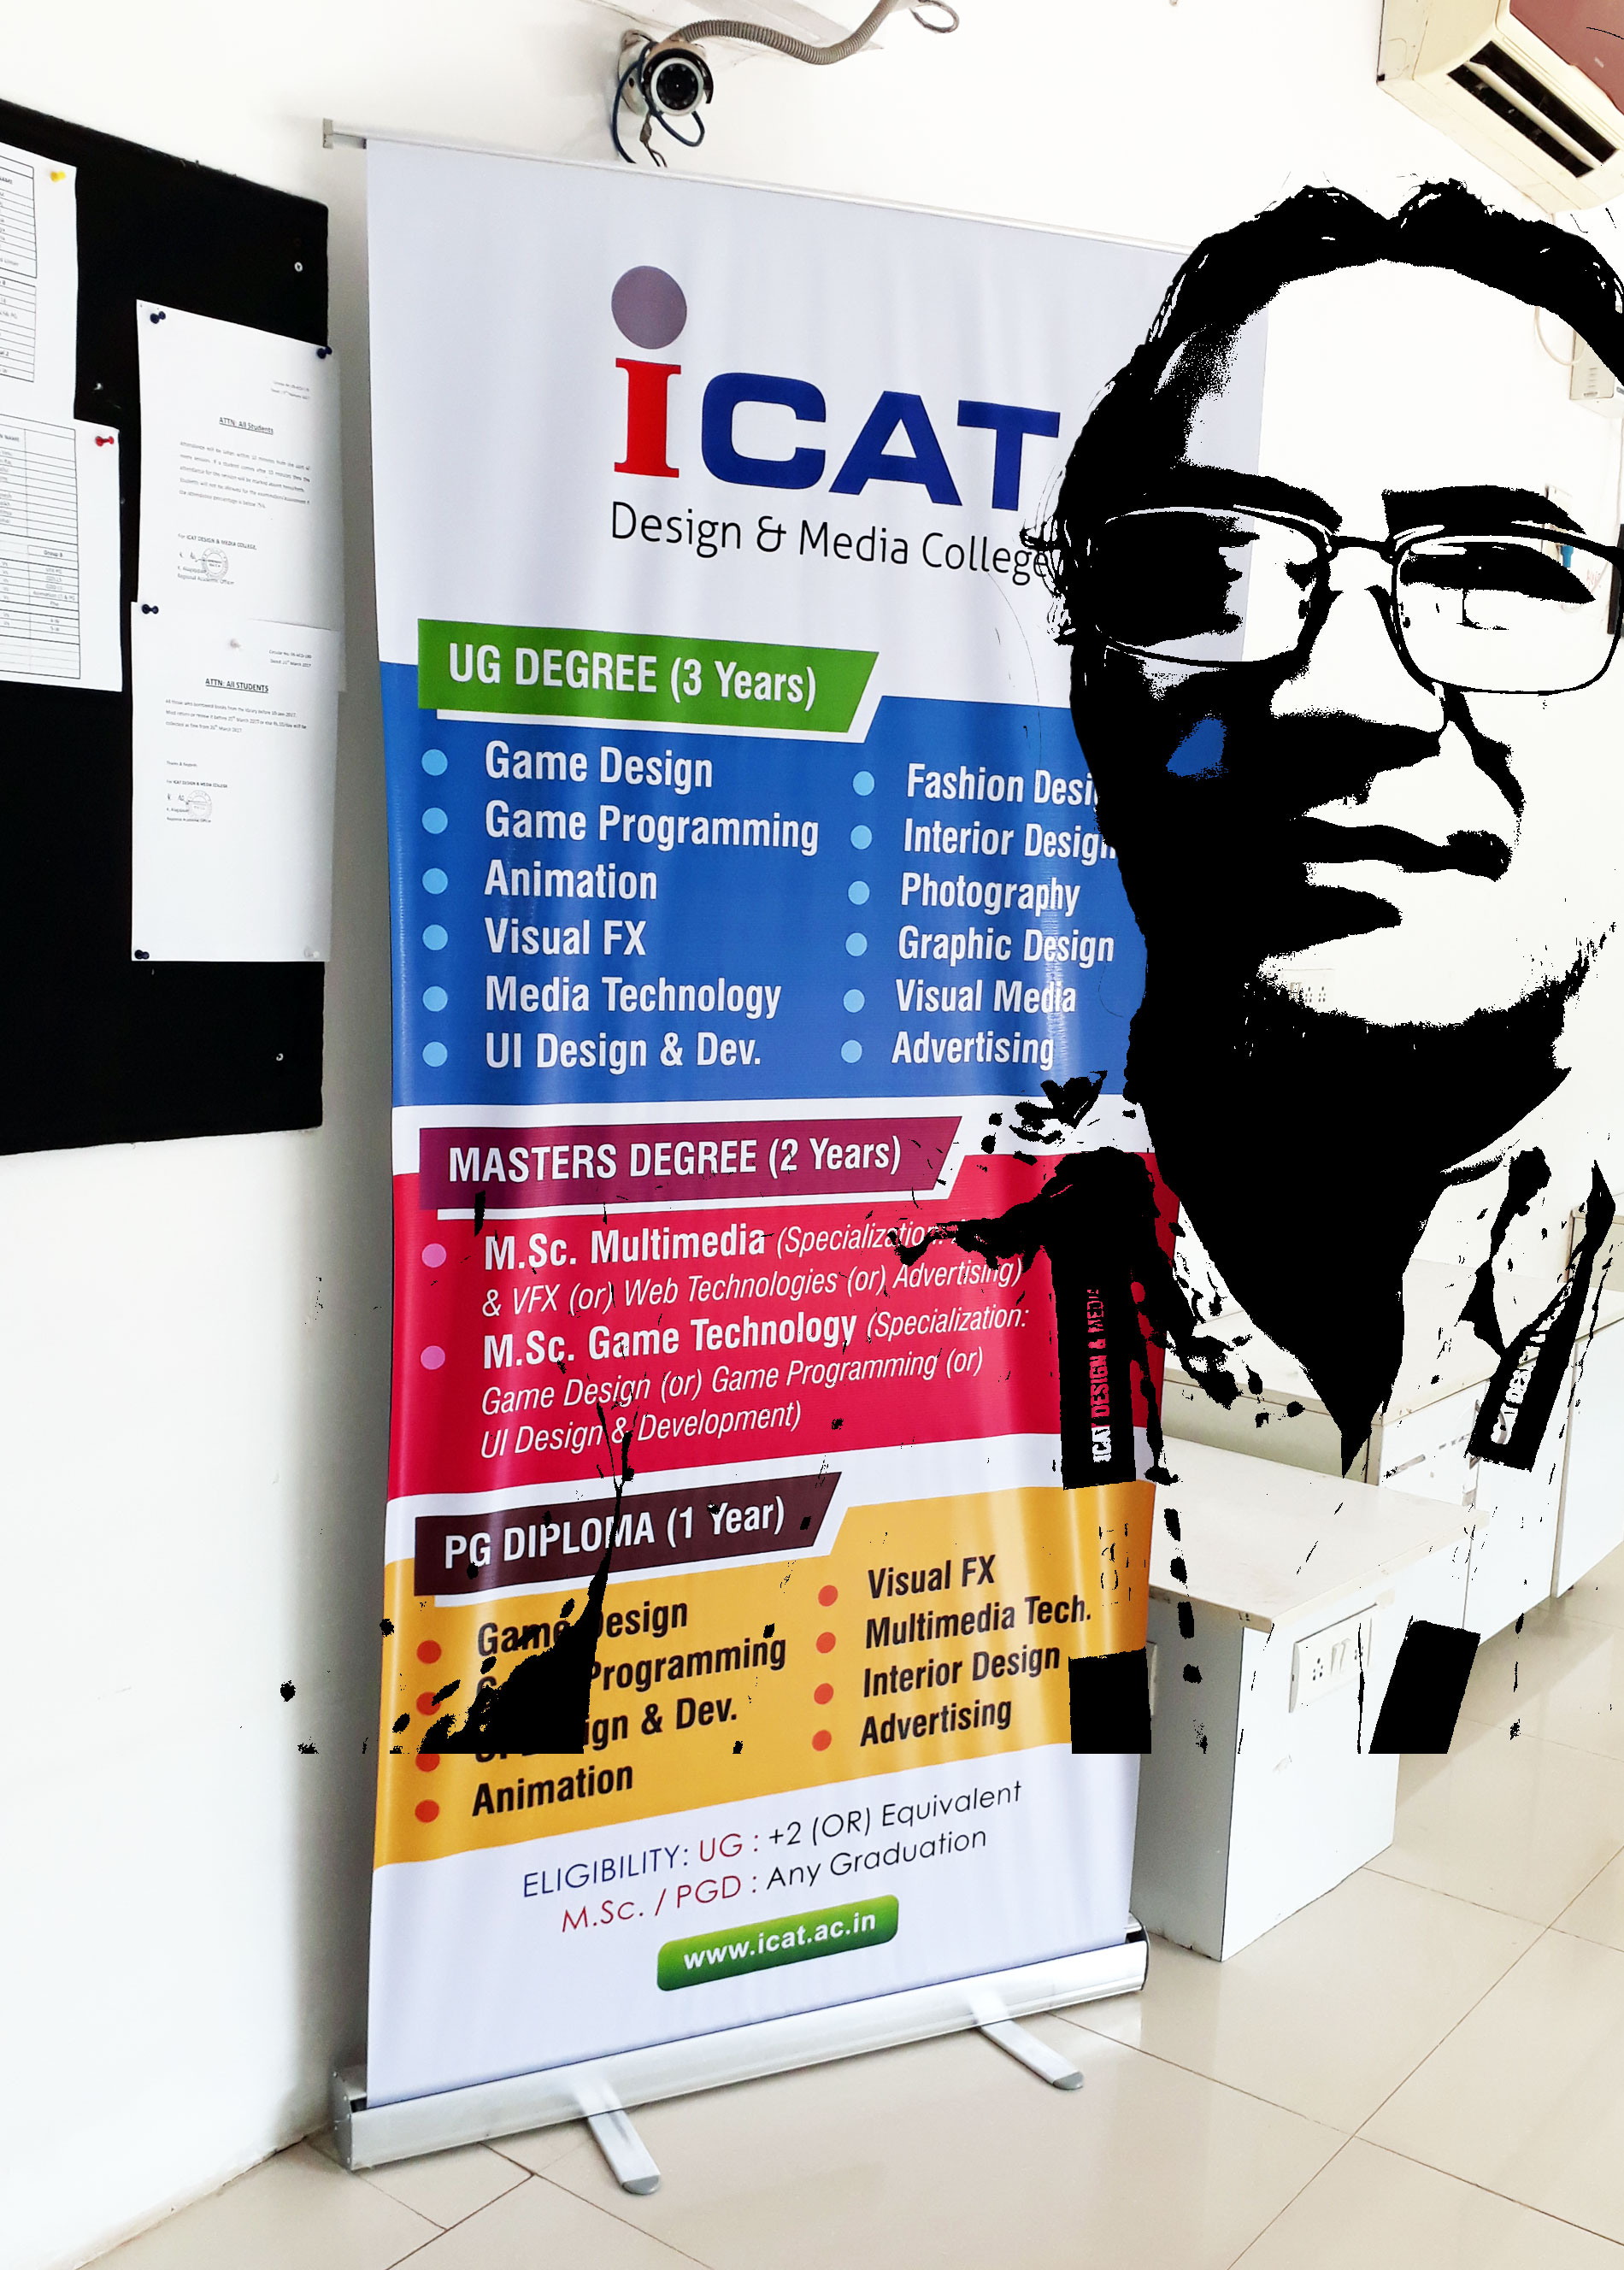 Sr. Lecturer at icat design and media college, Chennai